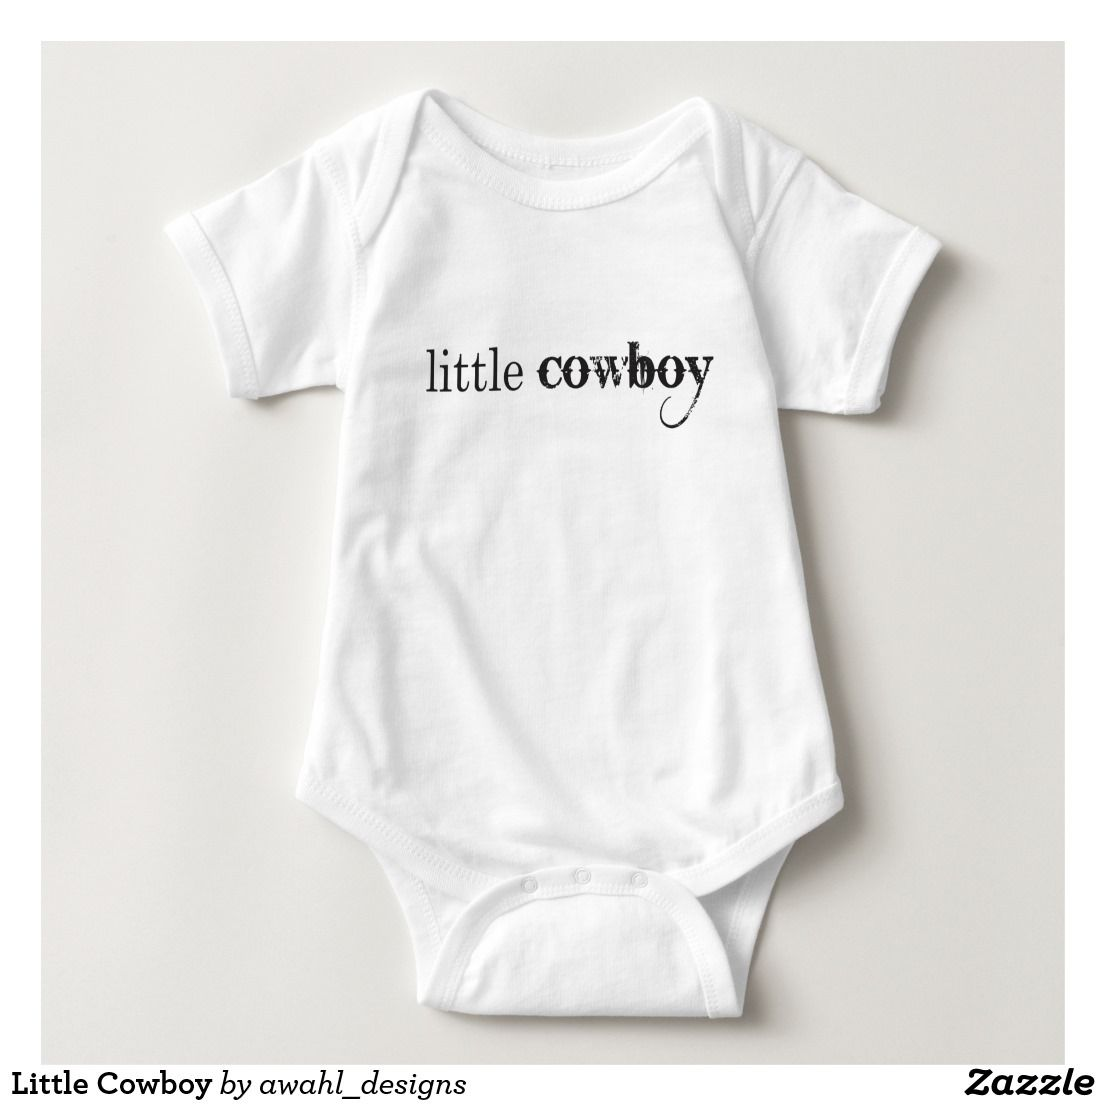 Little Cowboy Baby Bodysuit He already spits. You know he's destined to be a cowboy.